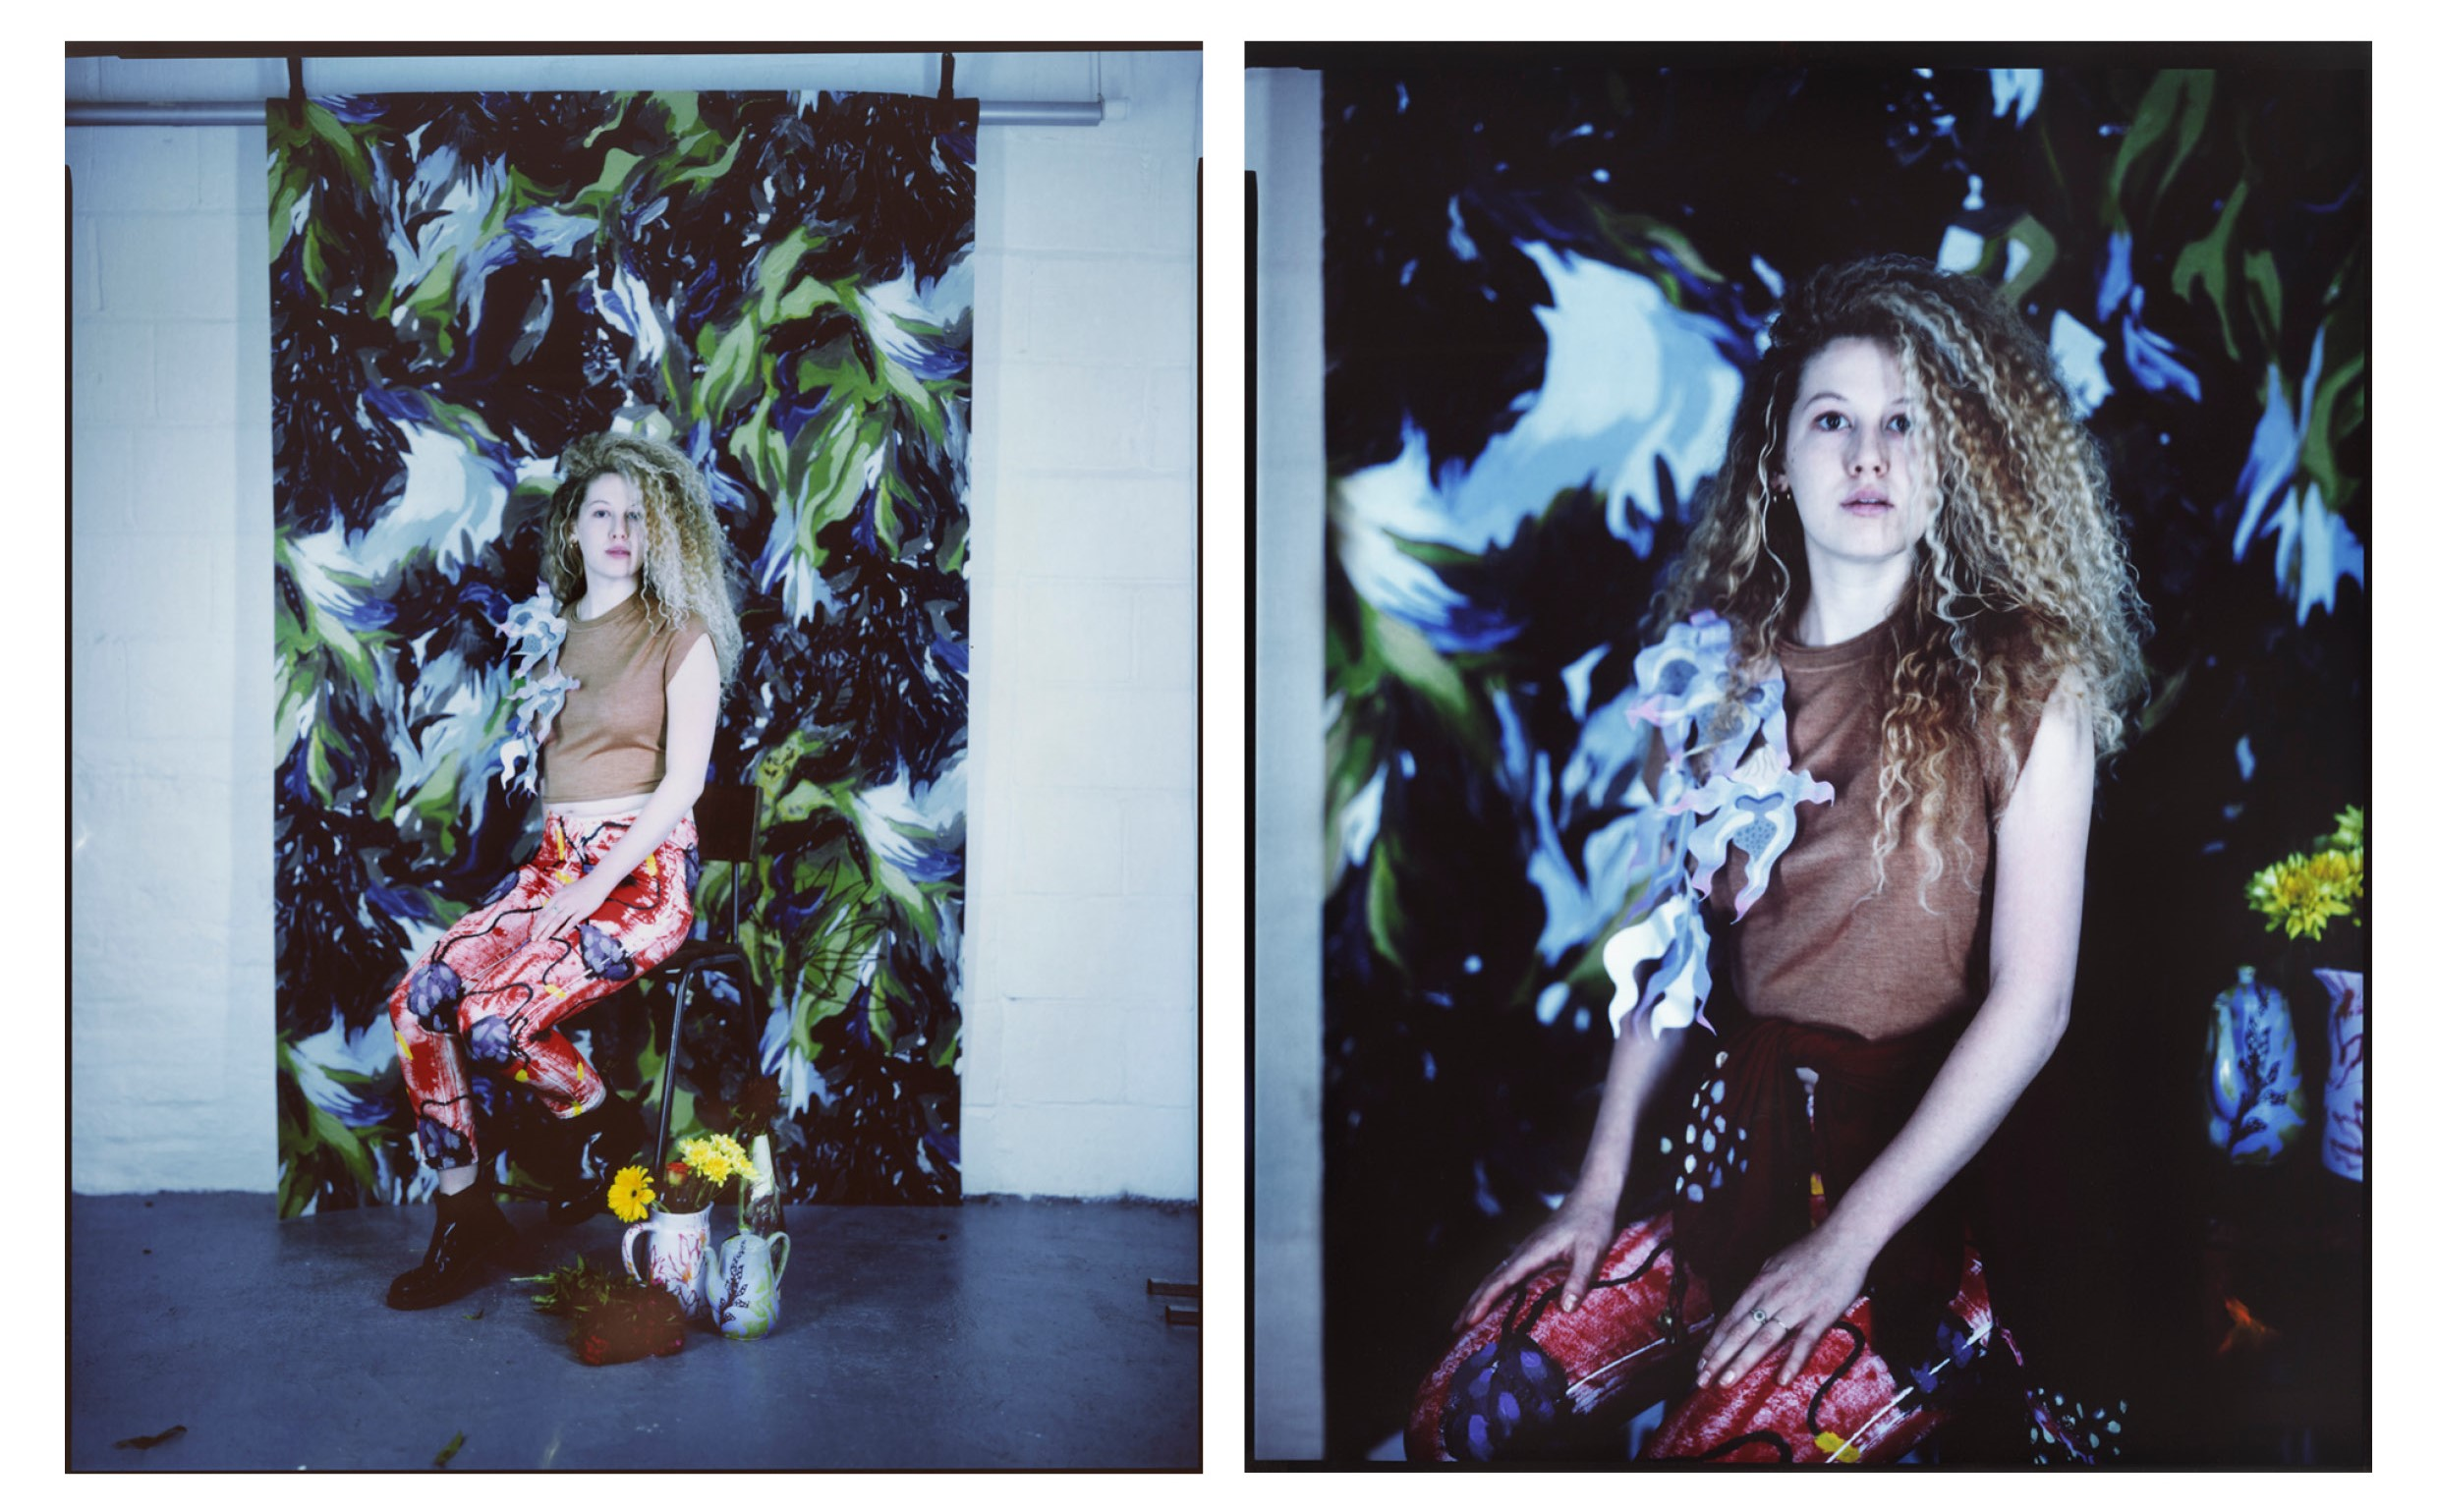 Model posed in front of printed fabric